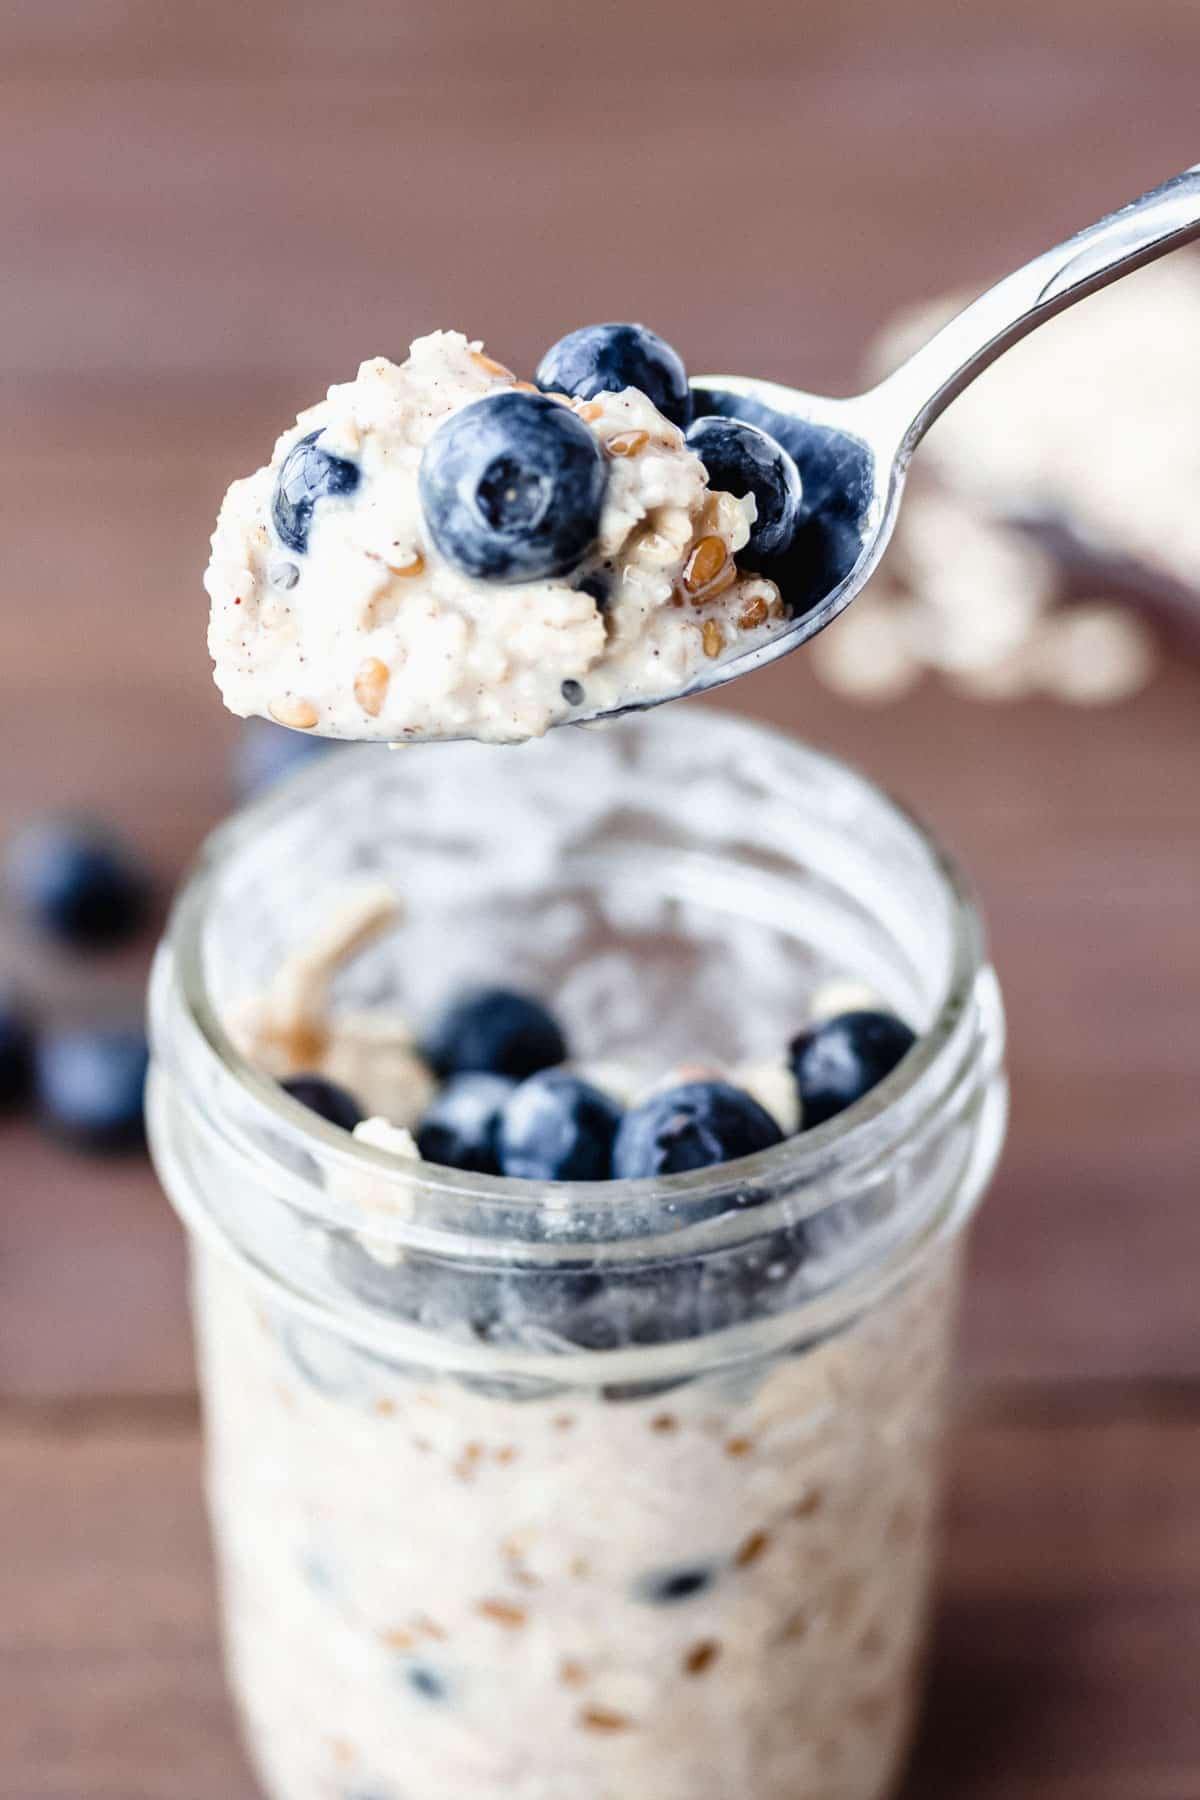 A spoonful of blueberry oatmeal being lifted up over a jar filled with more oatmeal